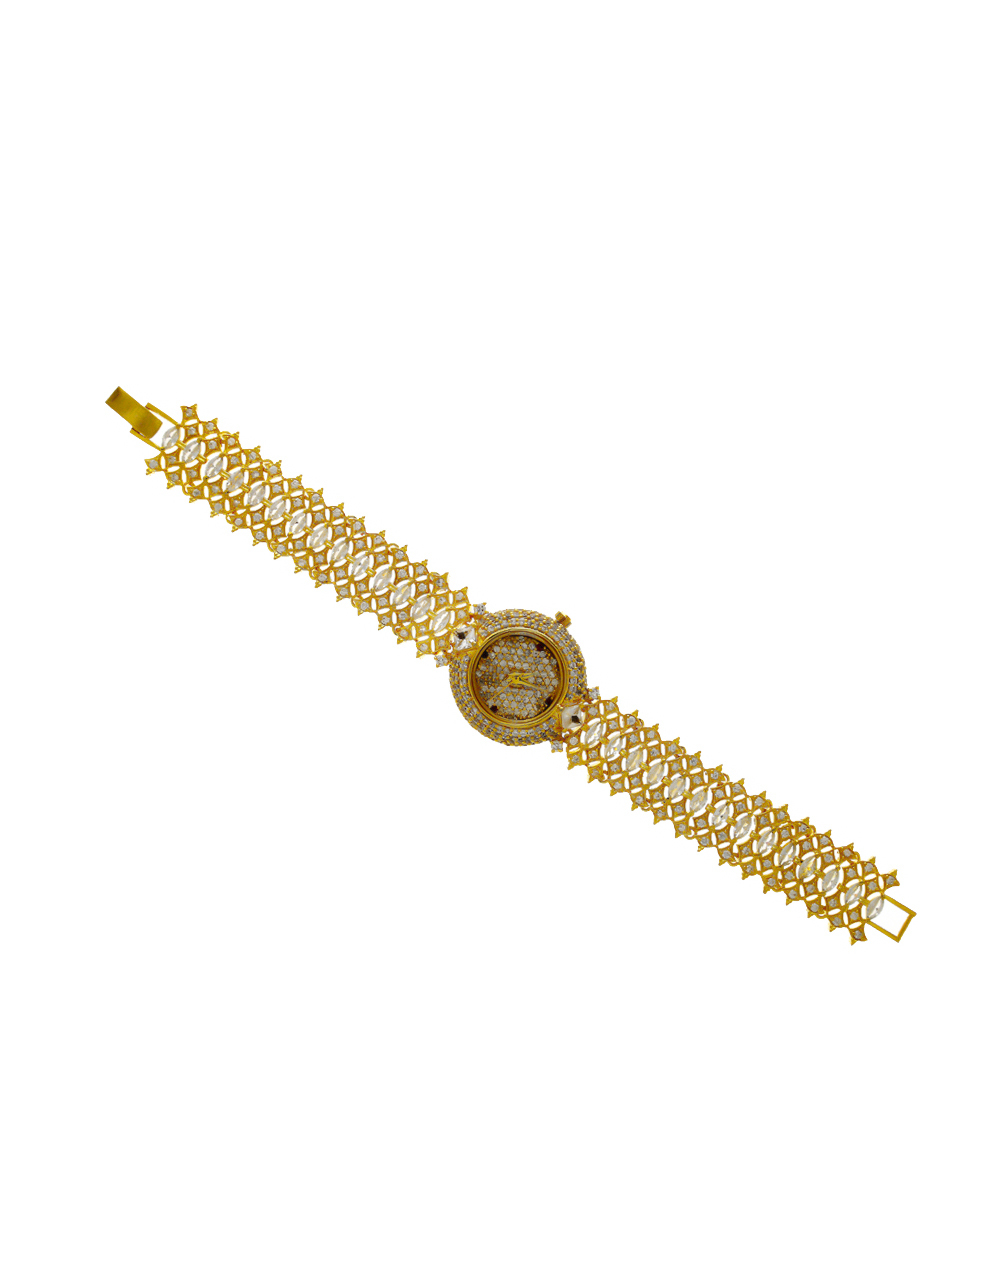 Fashionable Gold Finish American Diamond Watch For Girls Trendy